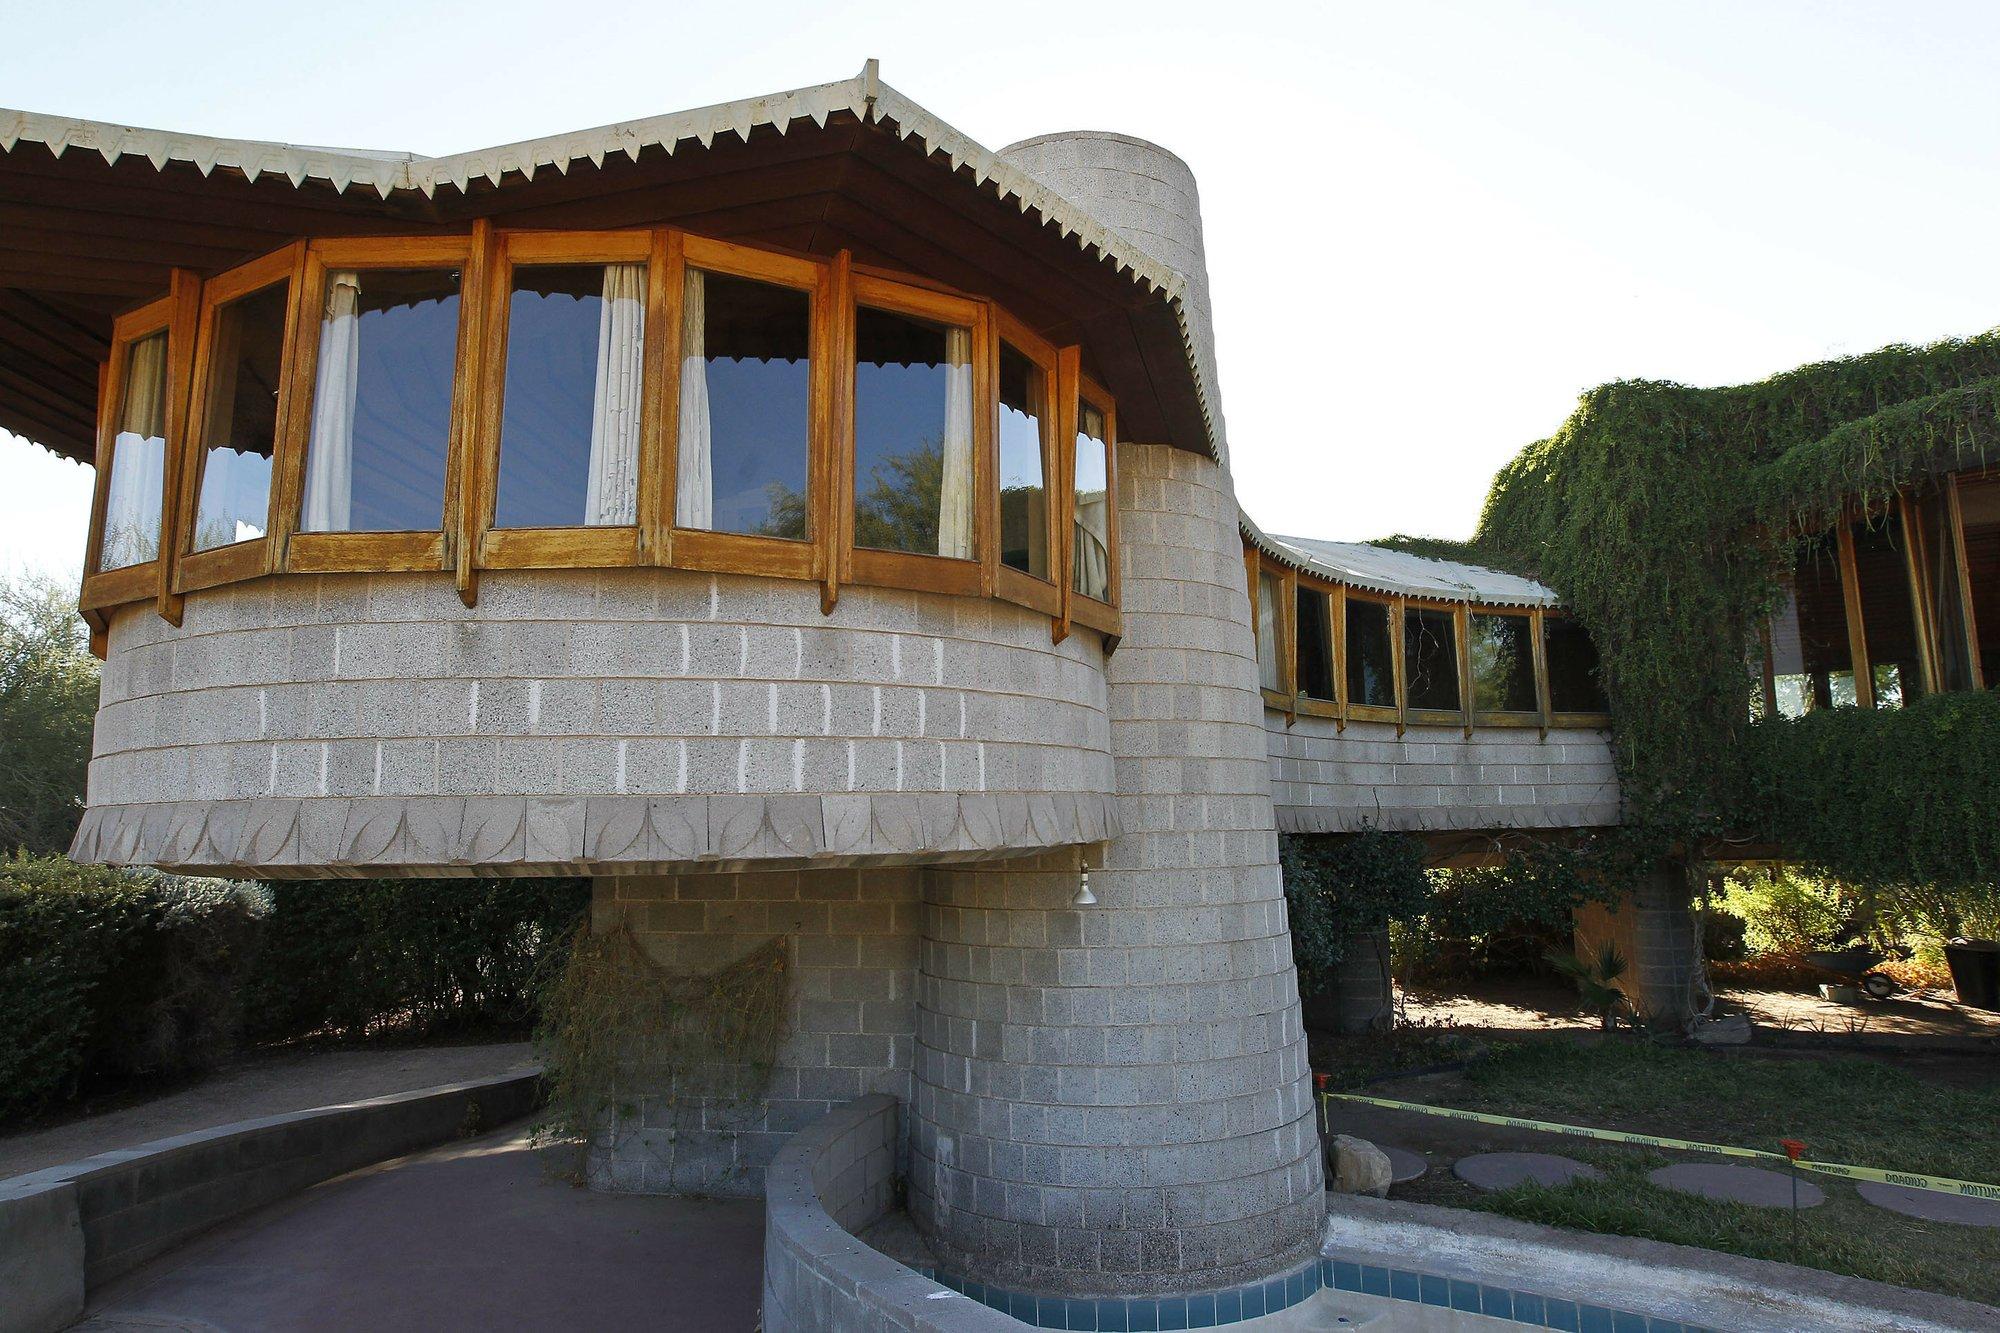 Frank Lloyd Wright Designed Phoenix Home For Sale For $12.9M